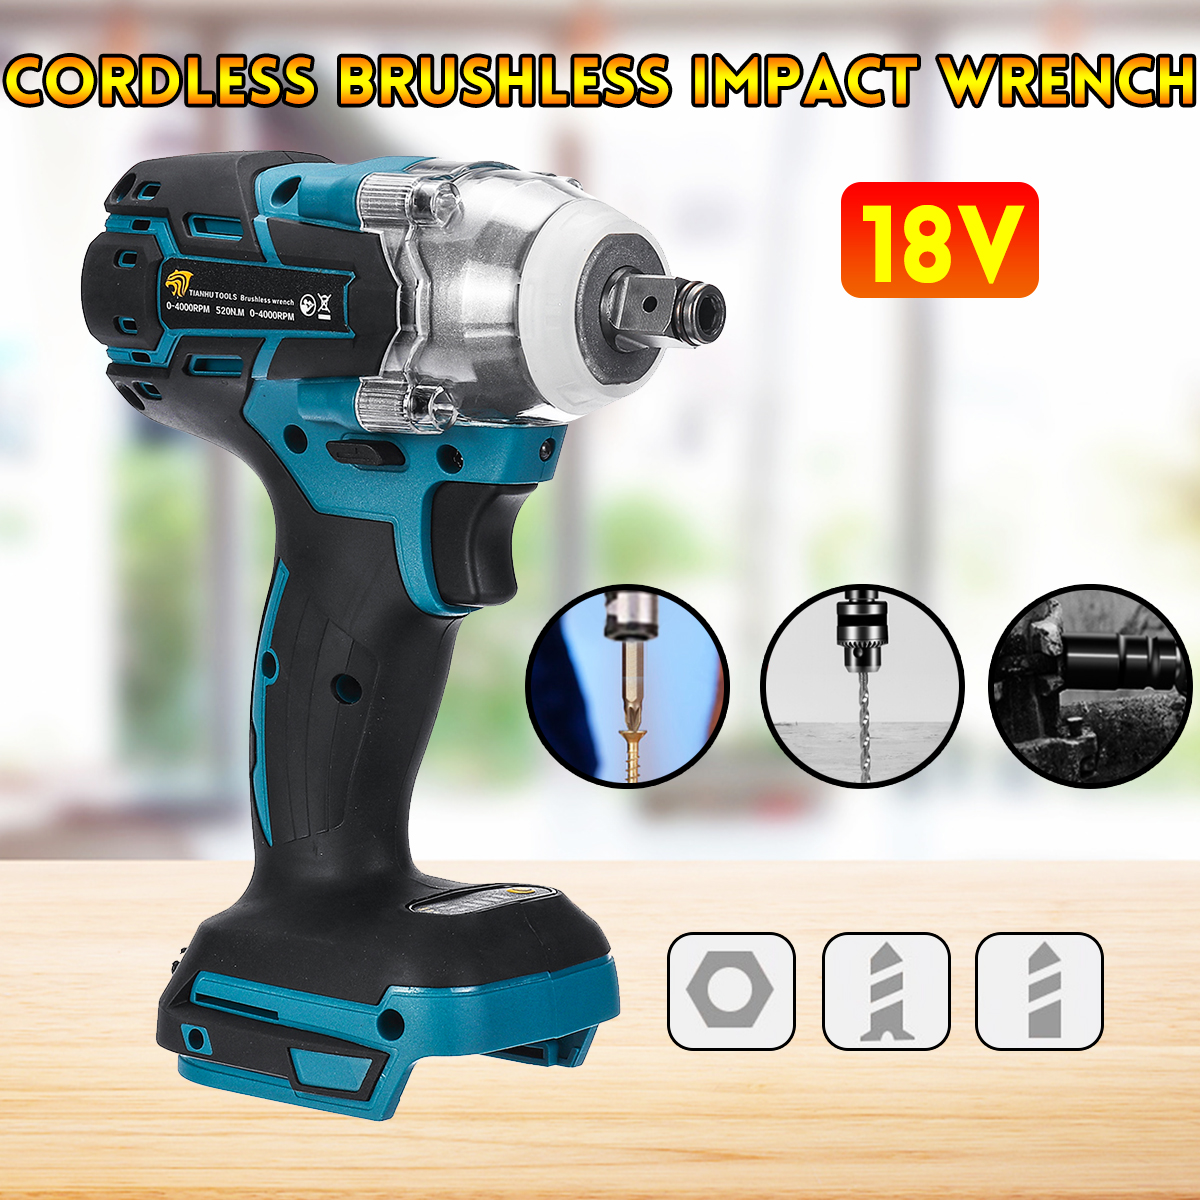 18V Electric Brushless Impact Wrench Rechargeable 1/2 Socket Wrench Power Tool Cordless Without Battery&accessories(China)